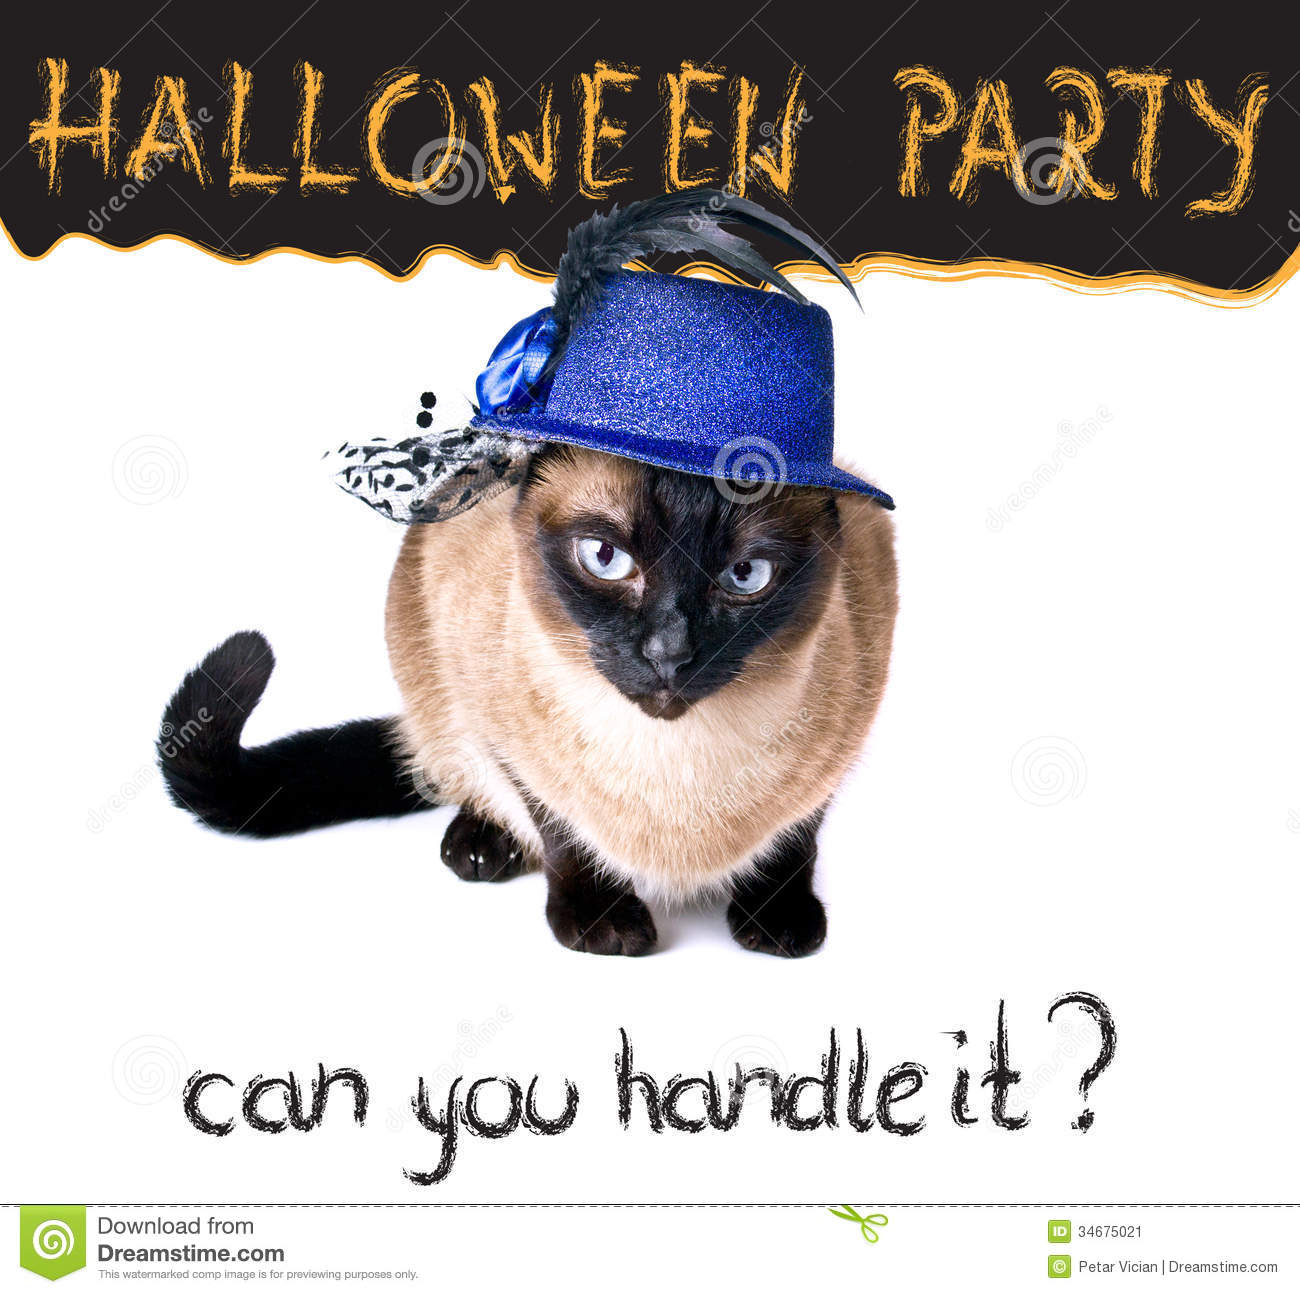 Halloween Party Banner Funny Edgy Jumpy Siamese Hilarious Cat ...